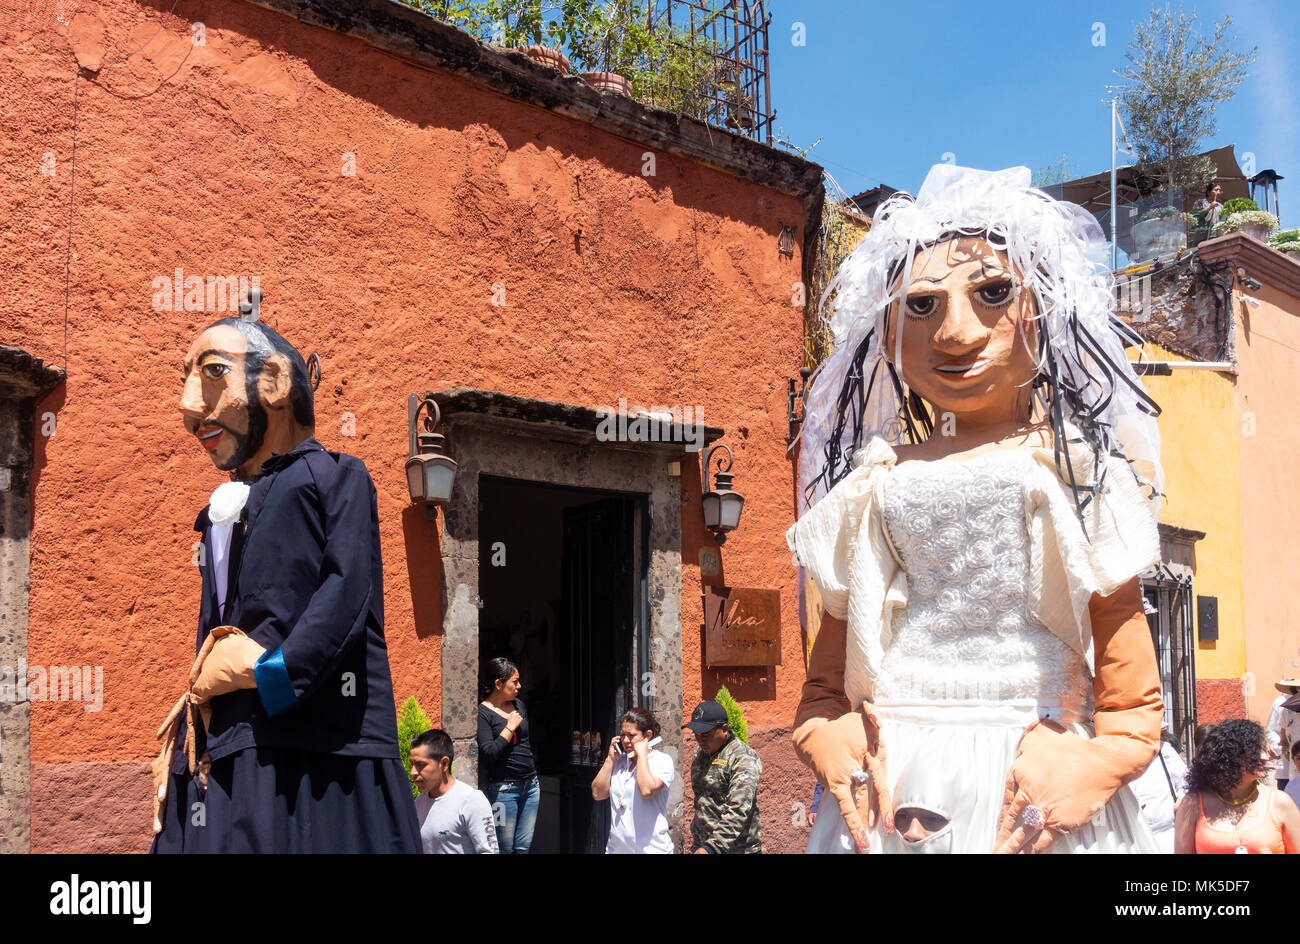 In San Miguel de Allende, a parade with two mojiangas, giant puppets - Stock Image